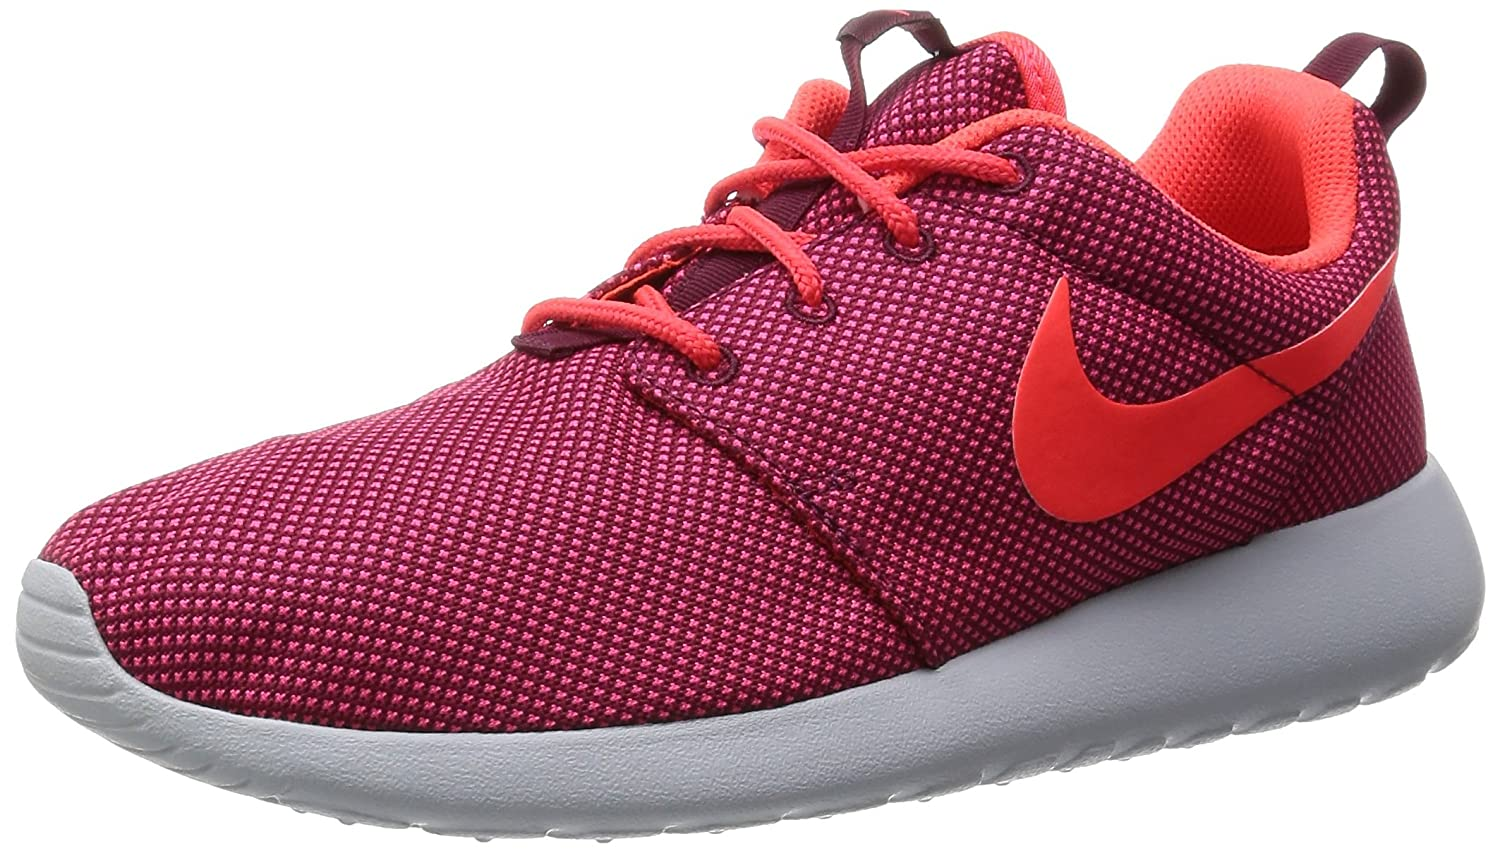 934e0213b9a0 Nike Womens Roshe one Running Trainers 511882 Sneakers Shoes (US 9.5 ...